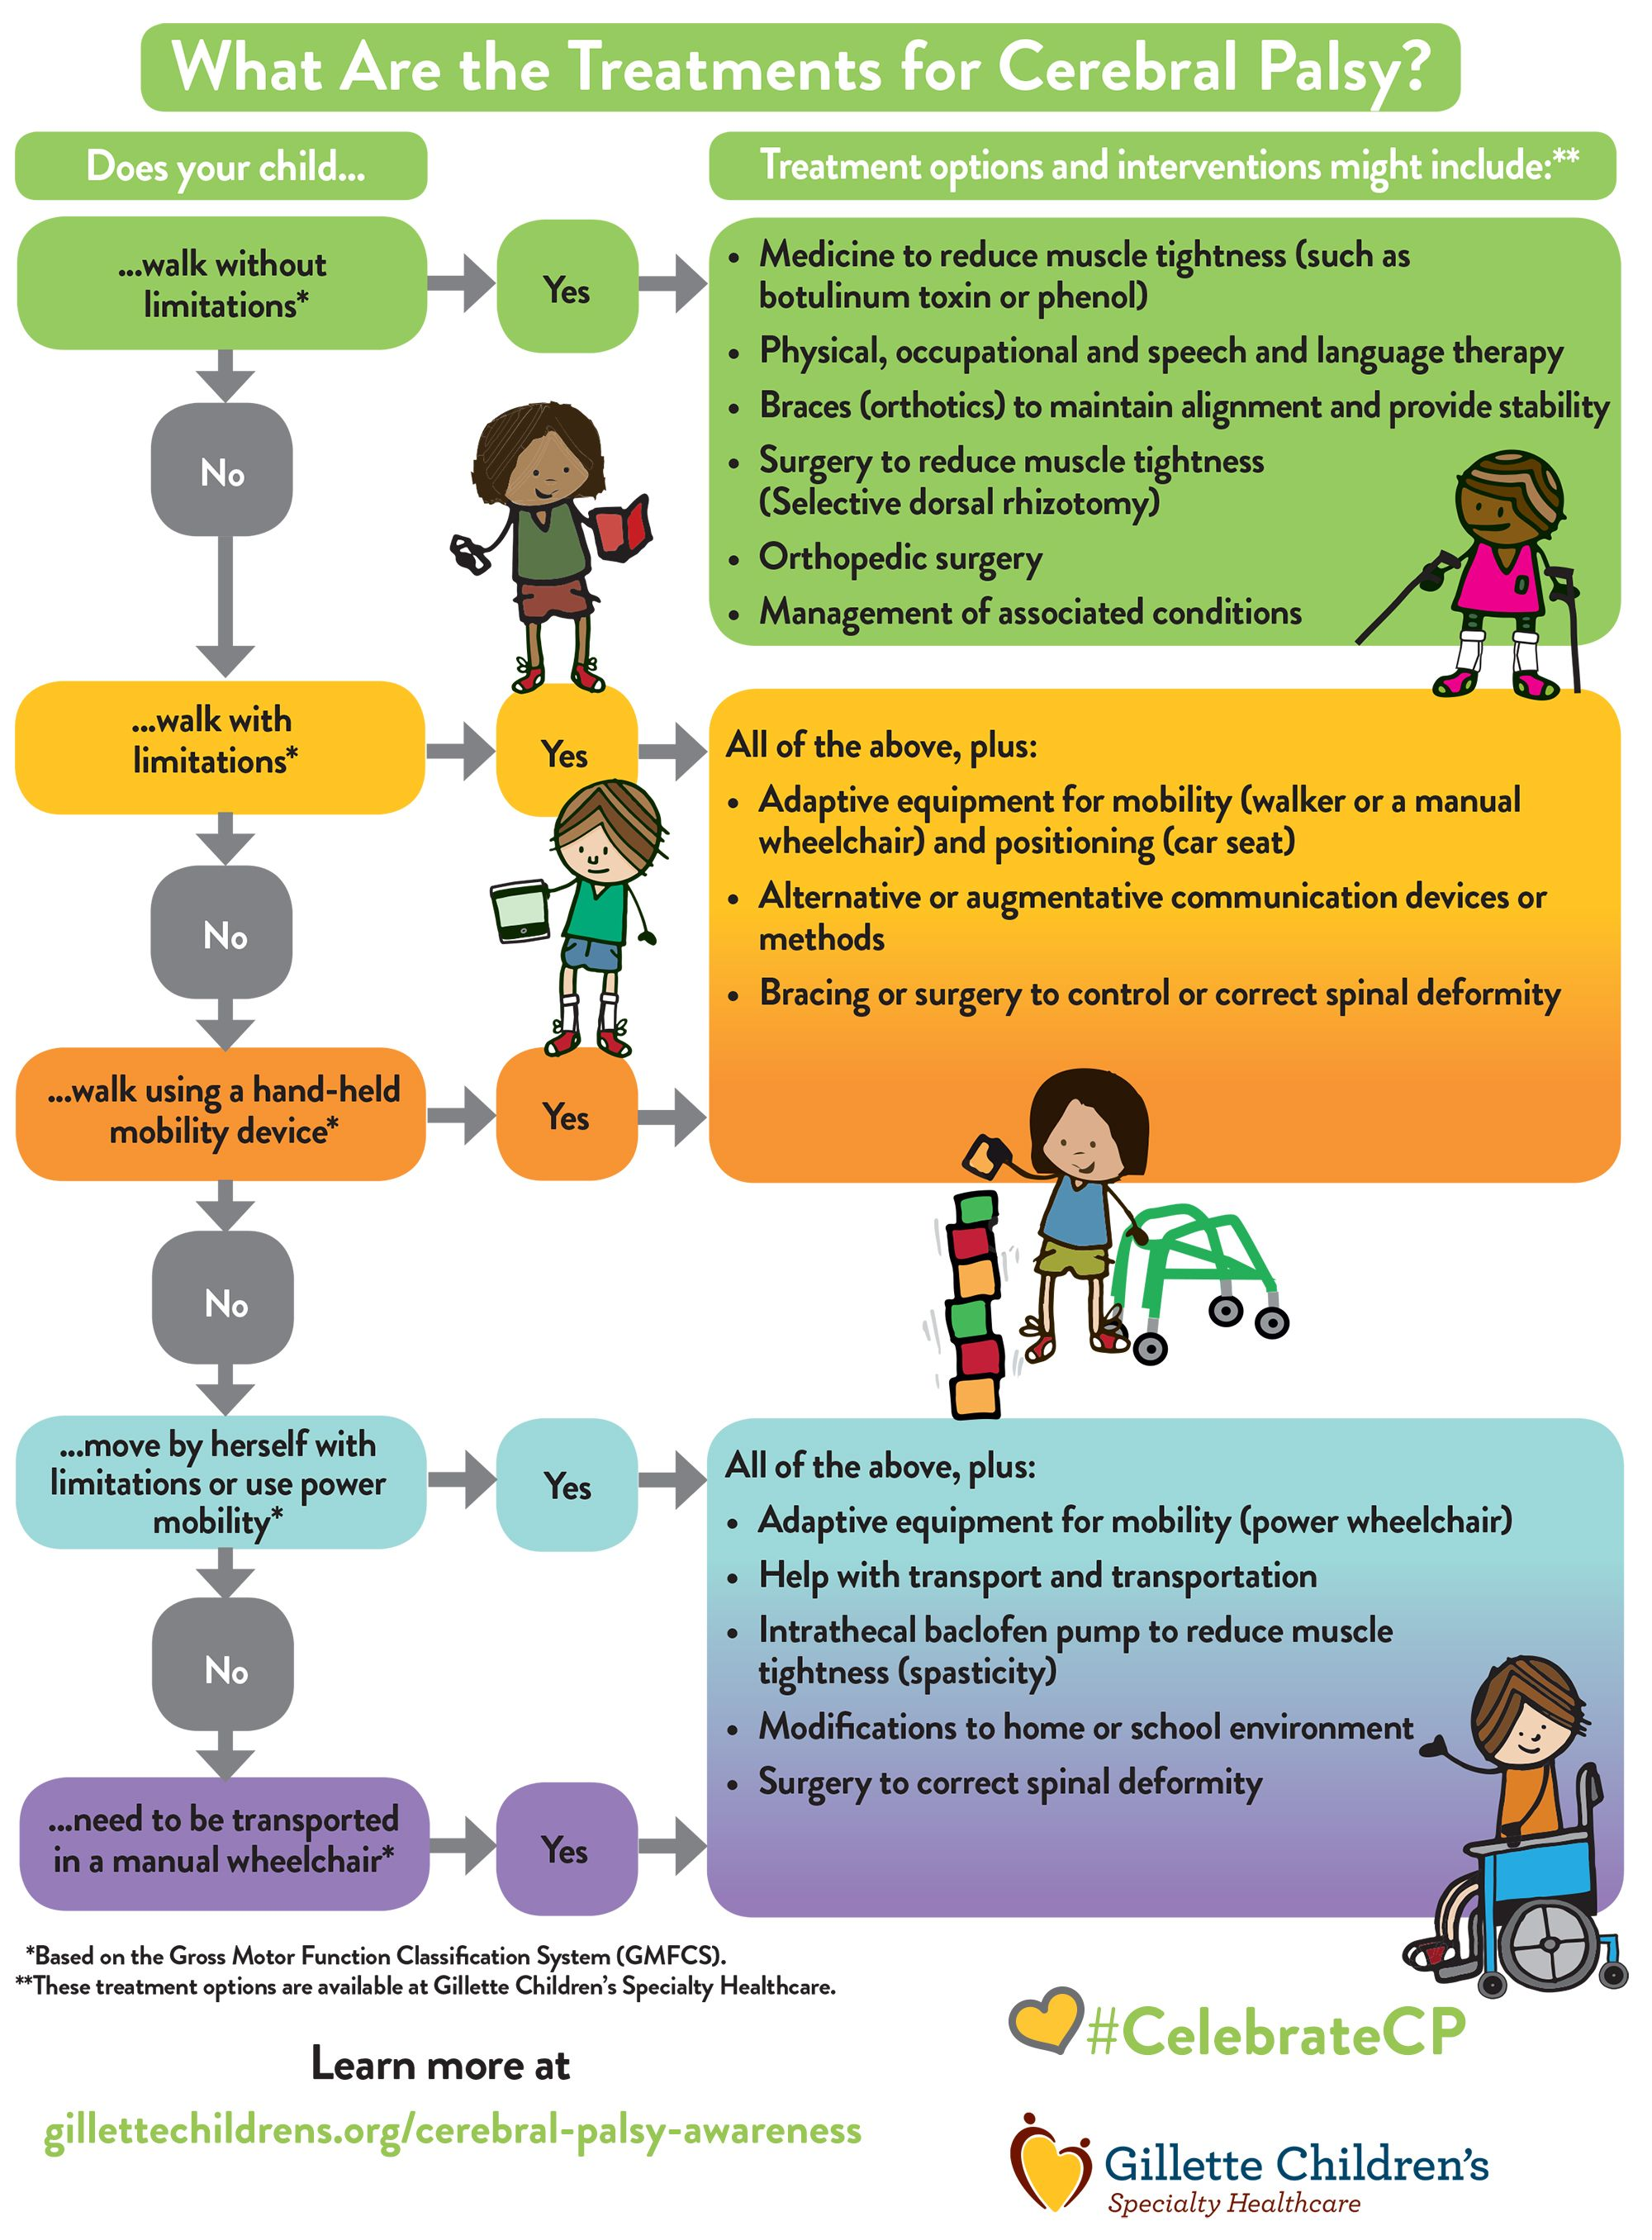 What Are The Treatments For Cerebral Palsy Infographic By Gillette Childrens Specialty